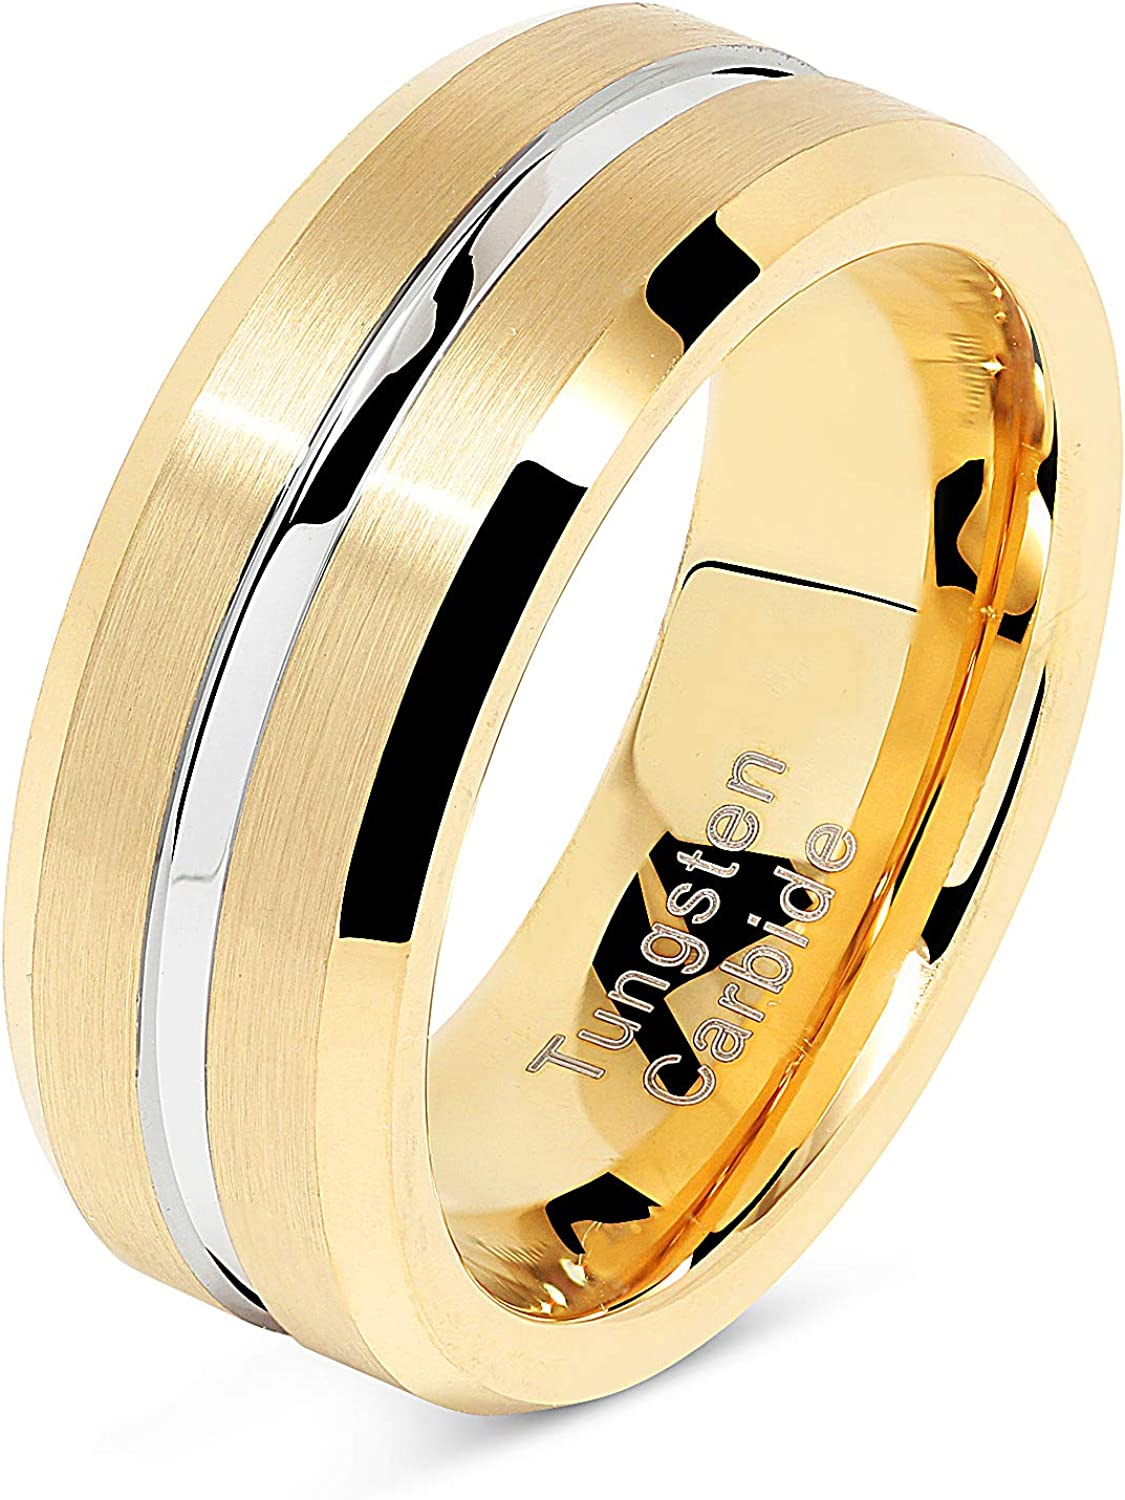 100S JEWELRY Tungsten Rings for Max 55% OFF Silver Men's Bands Wedding Gold Memphis Mall